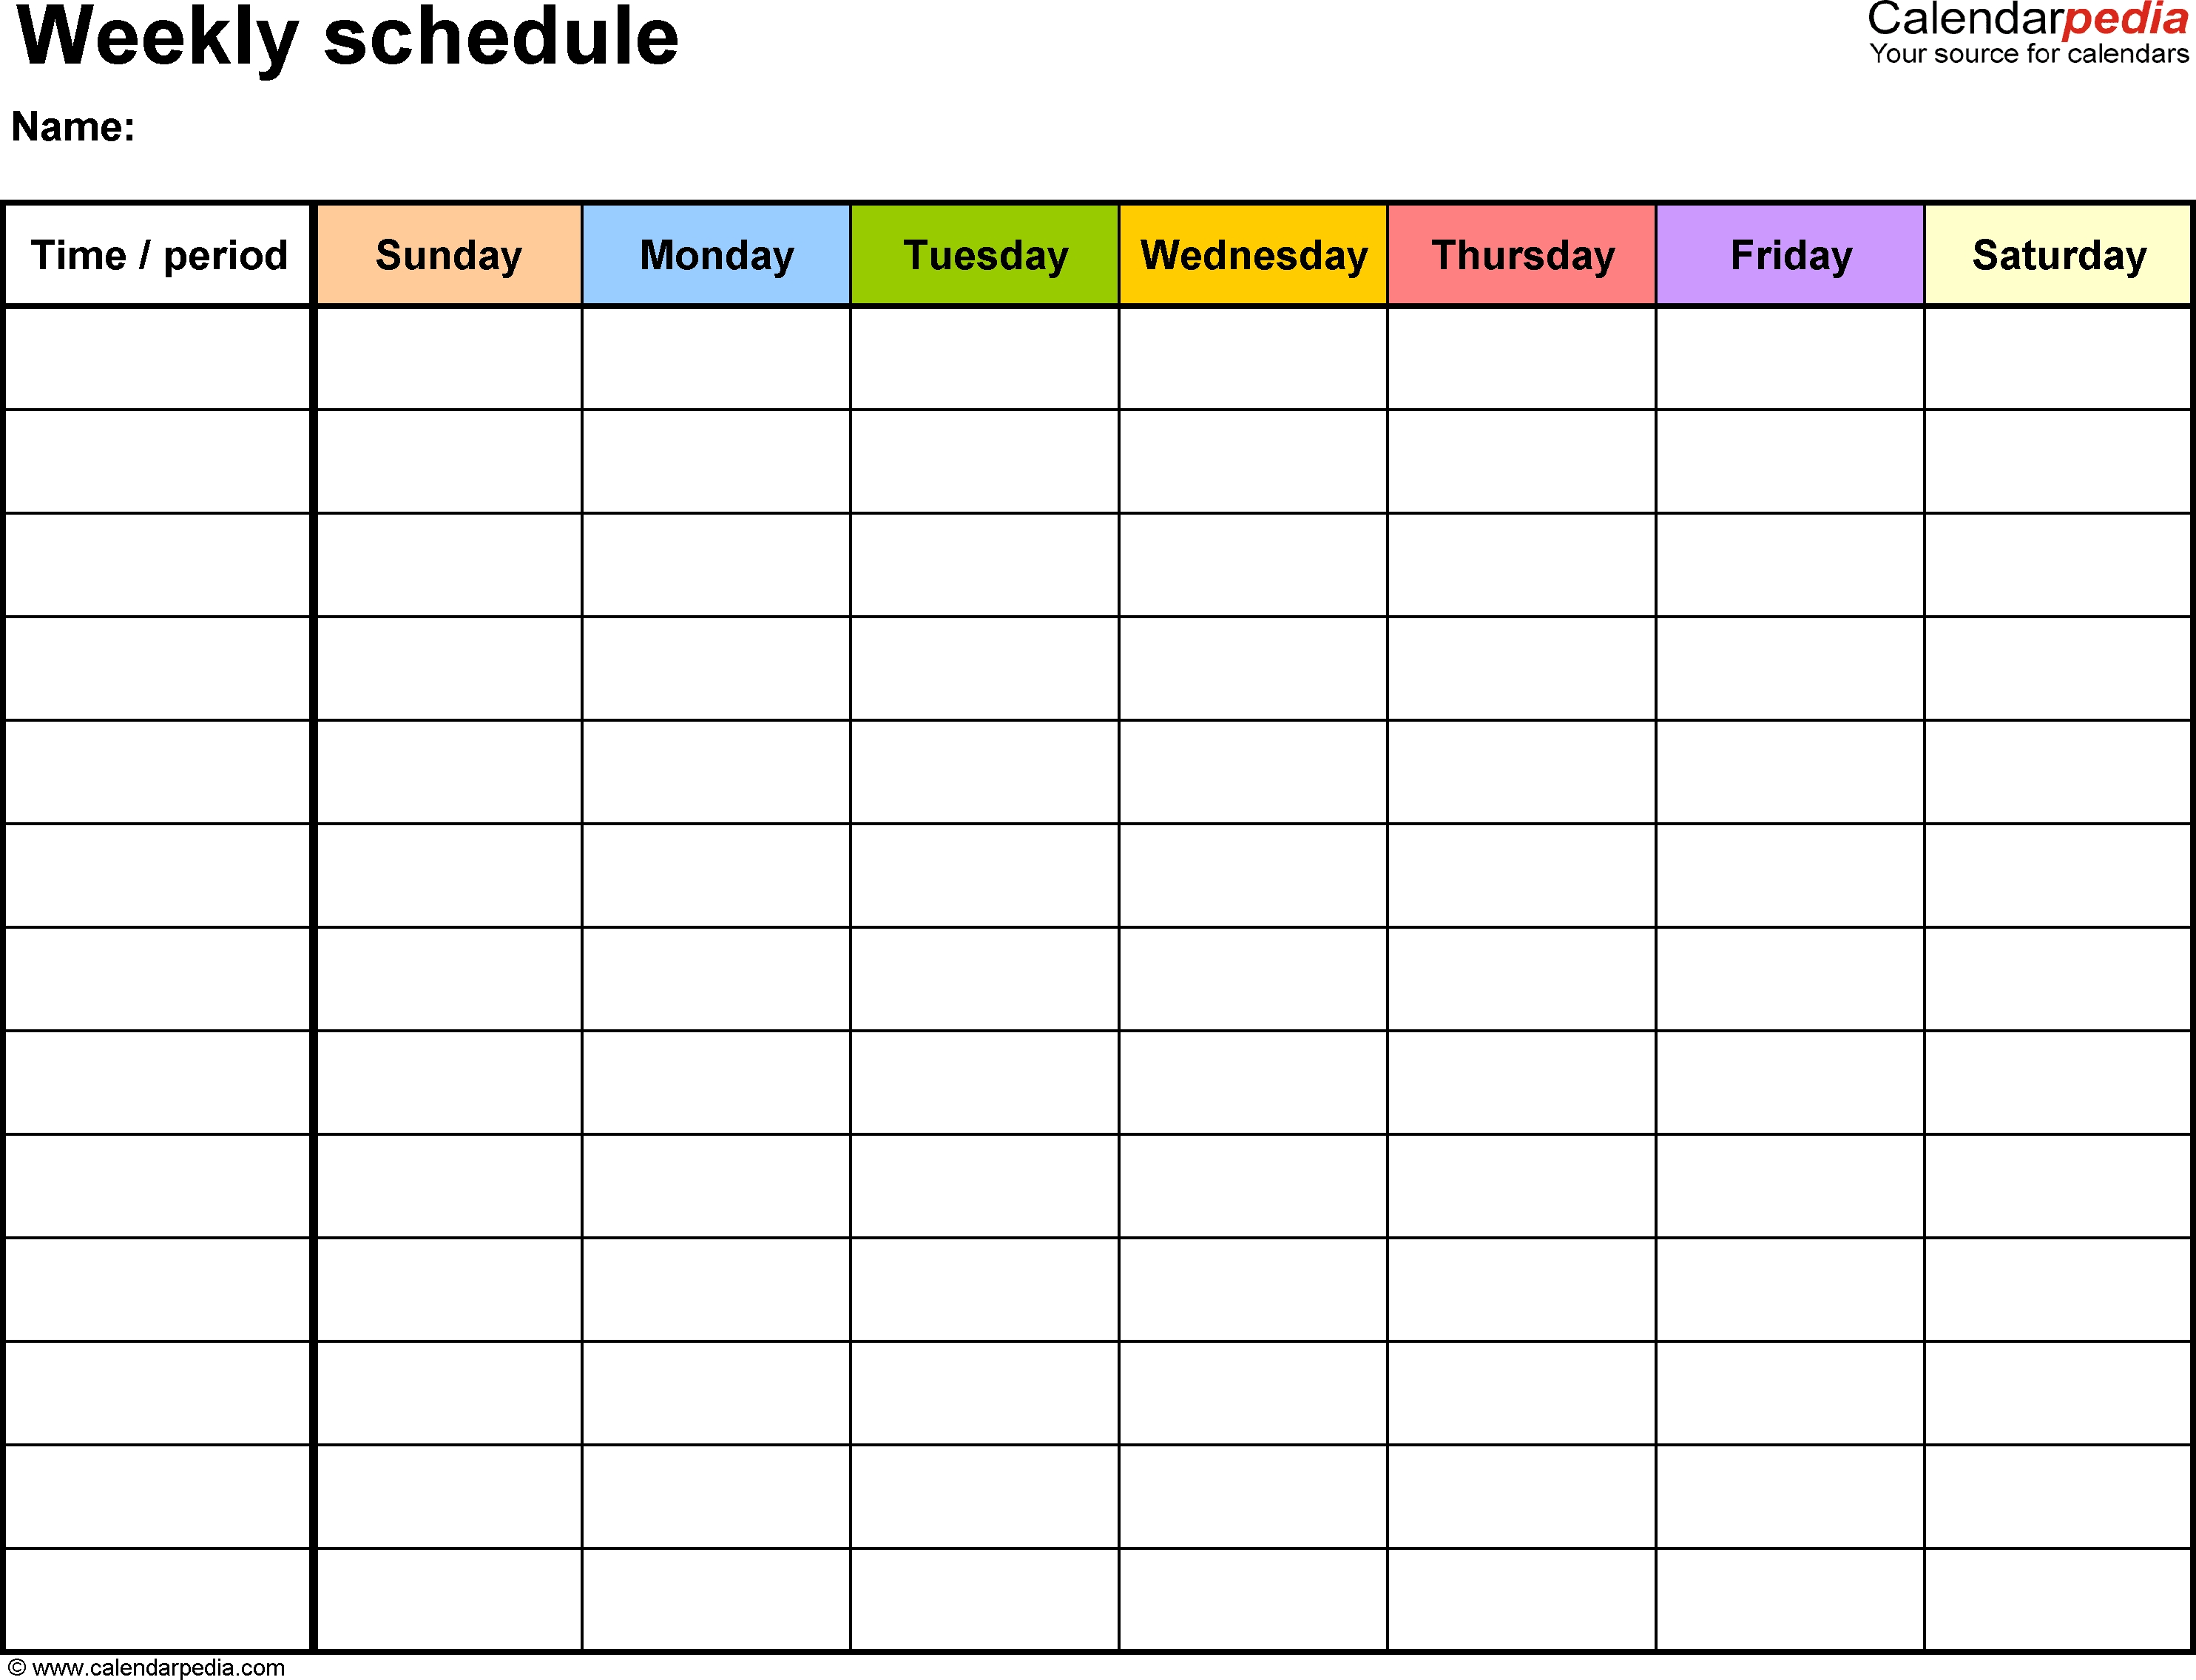 Weekly Schedule Template For Word Version 13: Landscape, 1